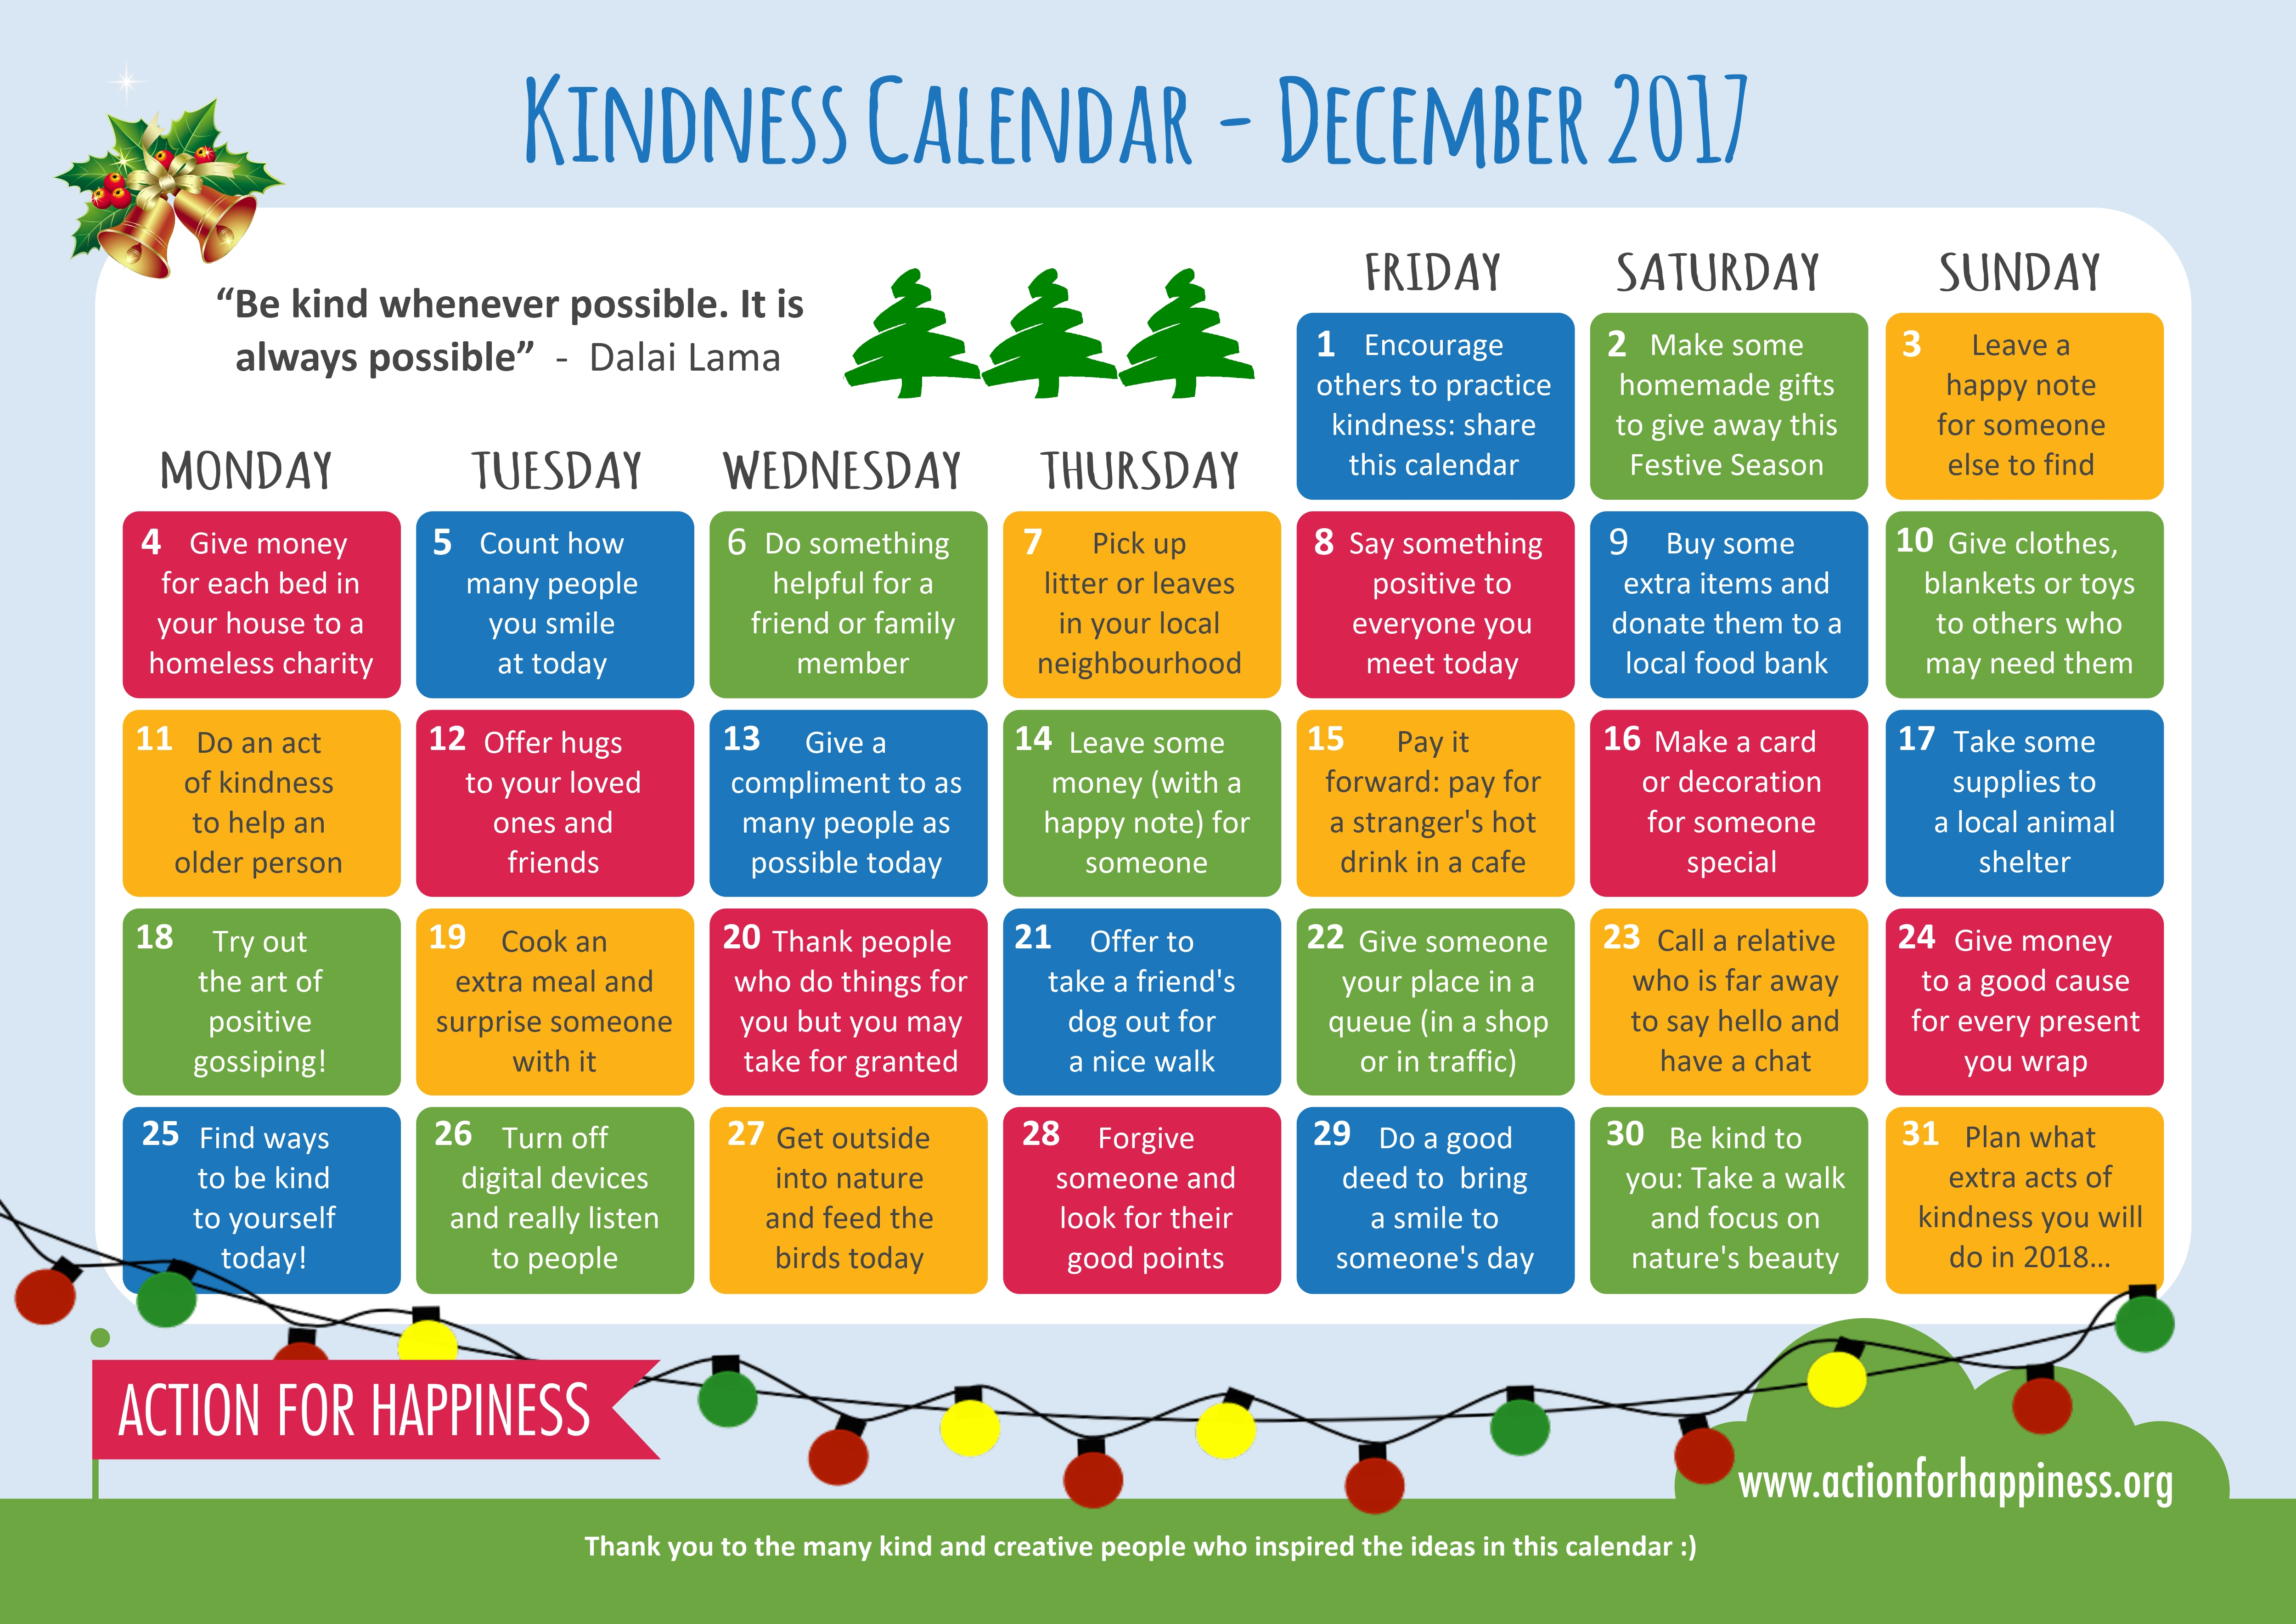 Action for Happiness' Kindness Calendar. Found on http://www.actionforhappiness.org/kindness-calendar